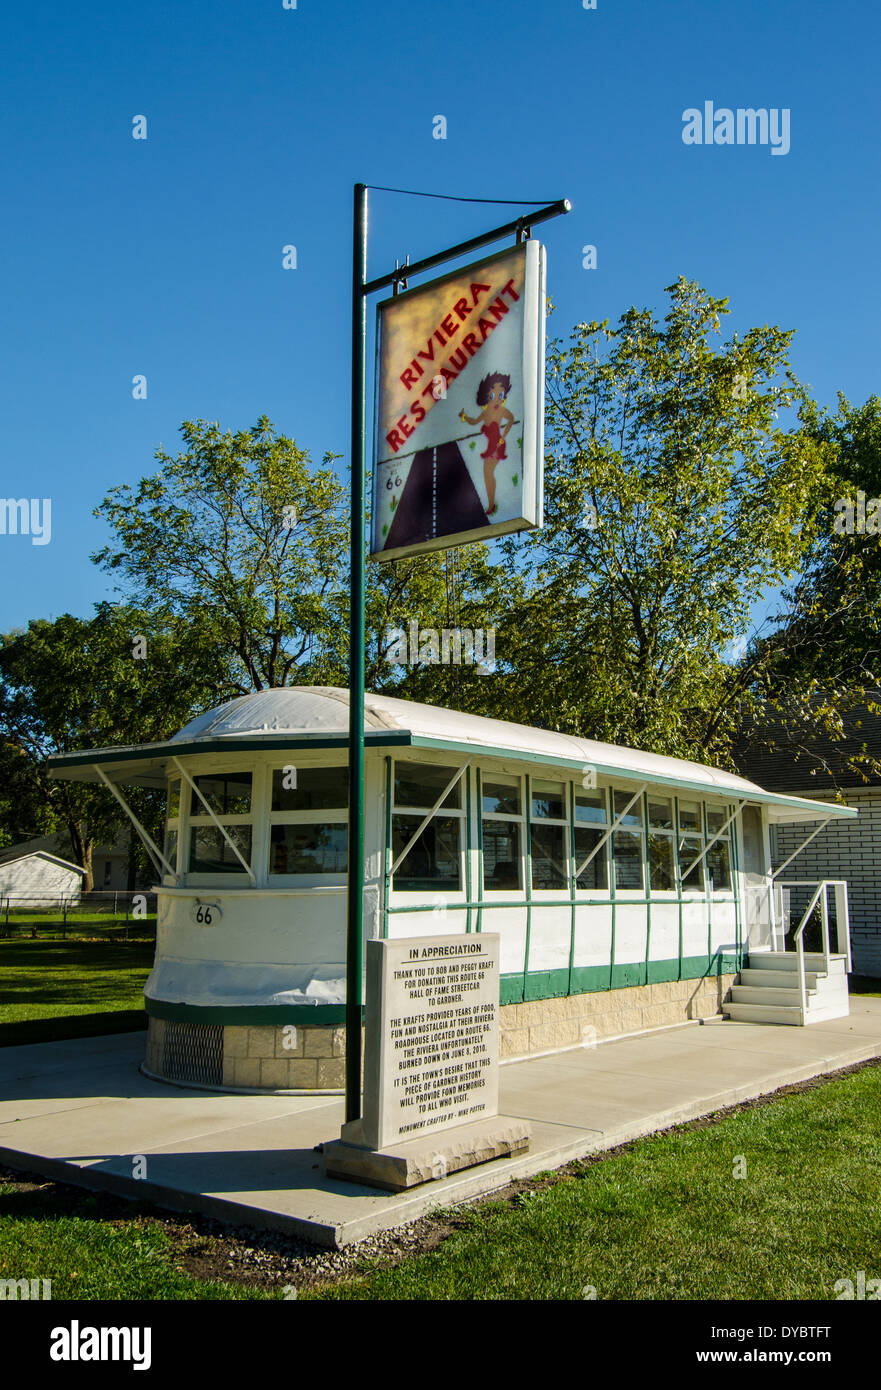 The Historic Streetcar Diner is in the Route 66 Hall of Fame and is located in a town along Route 66. - Stock Image